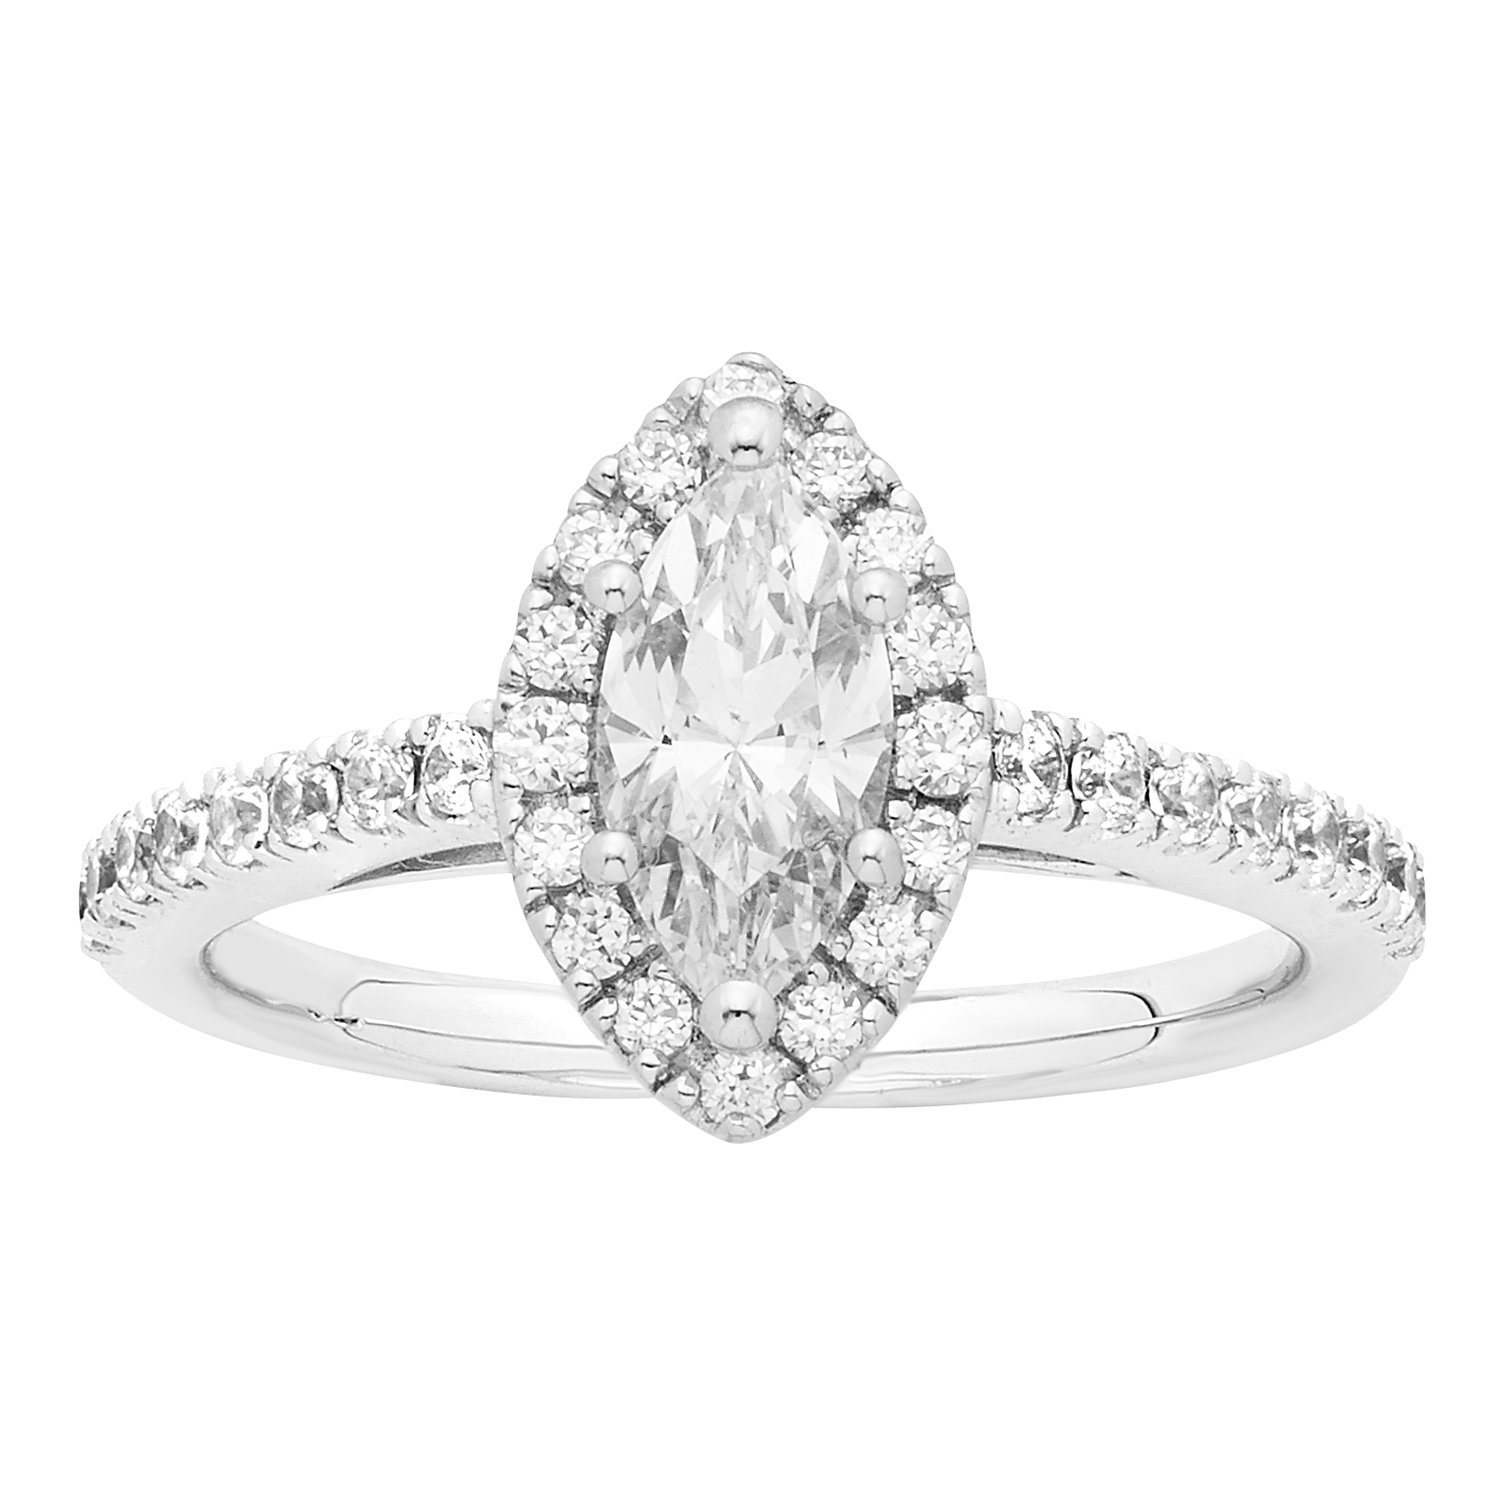 14K White Gold .84 Ctw. Marquise and Round Cut Diamond Engagement Ring (VS2-SI1)